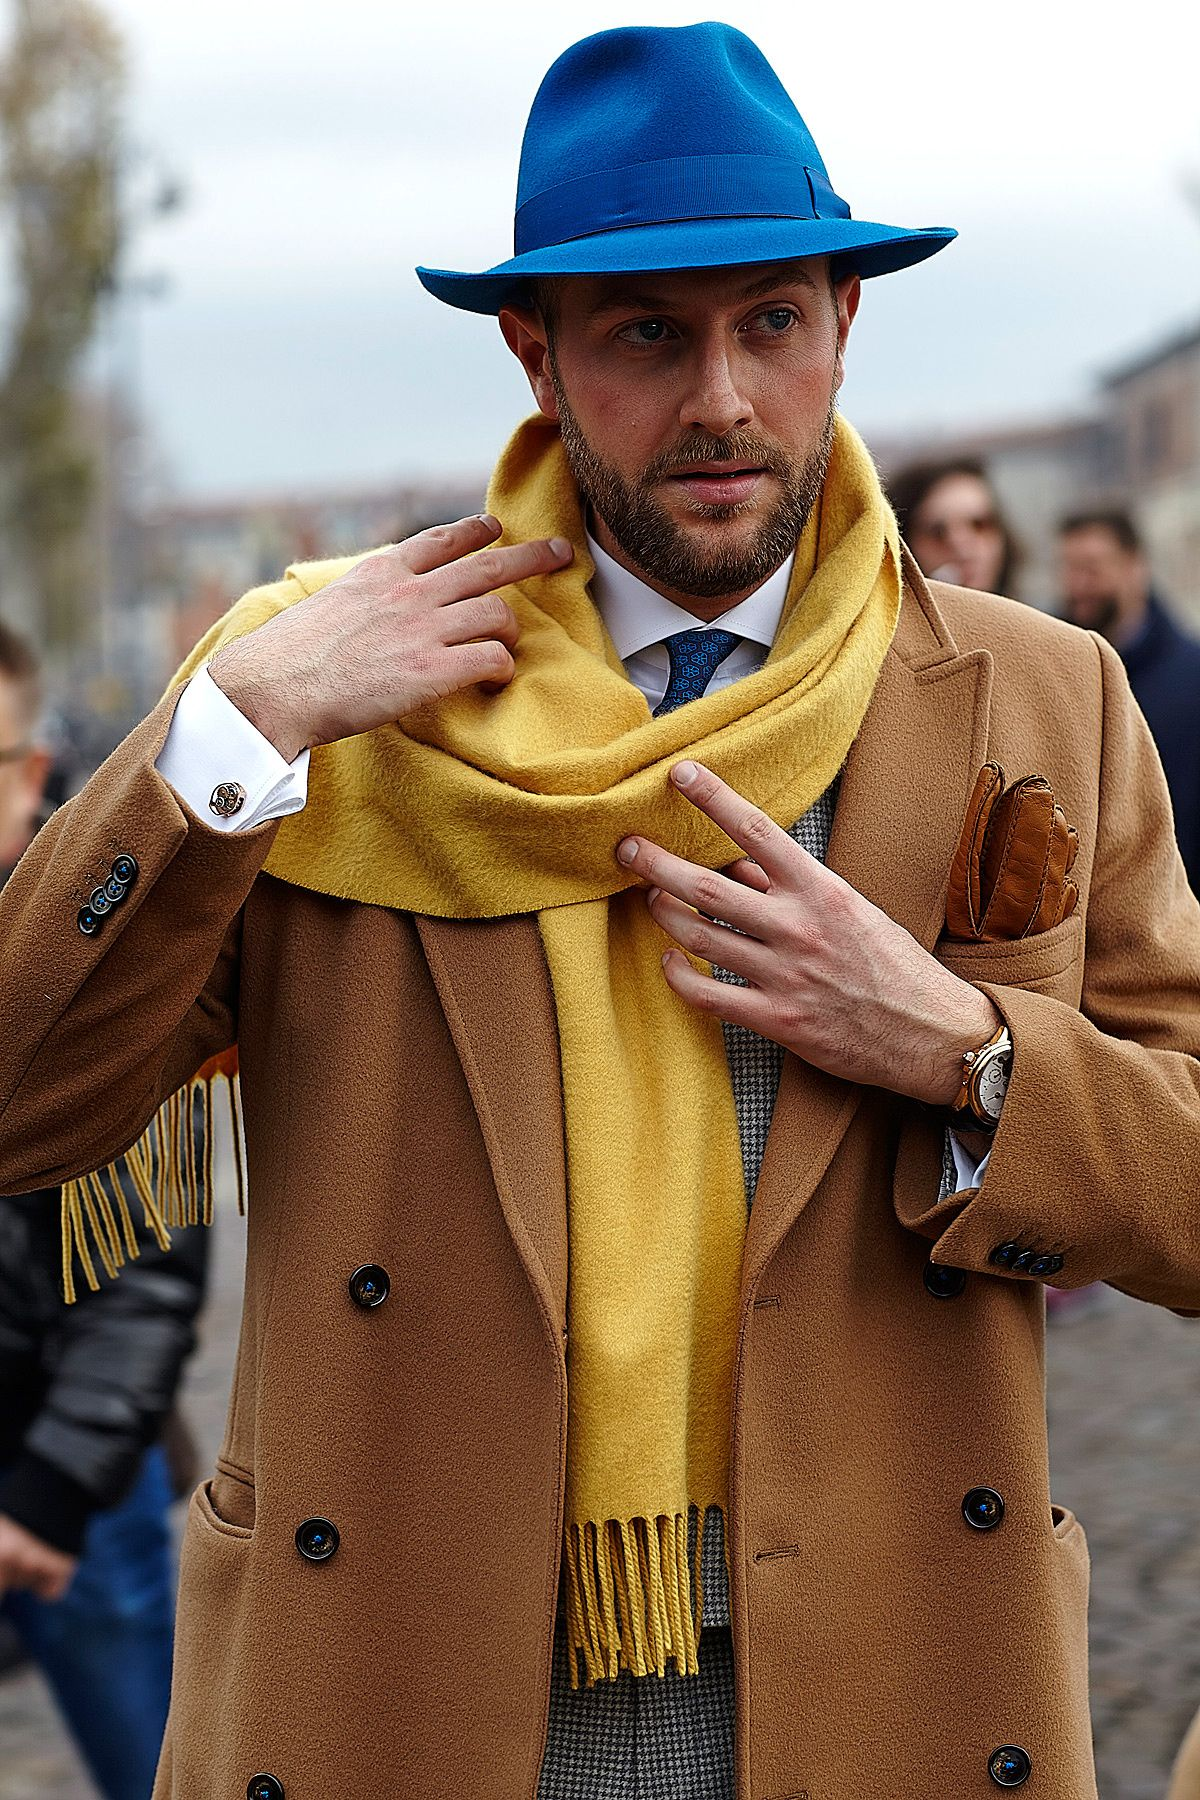 Mens leather gloves gq - Shop This Look On Lookastic Blue Wool Hat White Dress Shirt Navy Print Tie Mustard Scarf Brown Leather Gloves Camel Overcoat Black And White